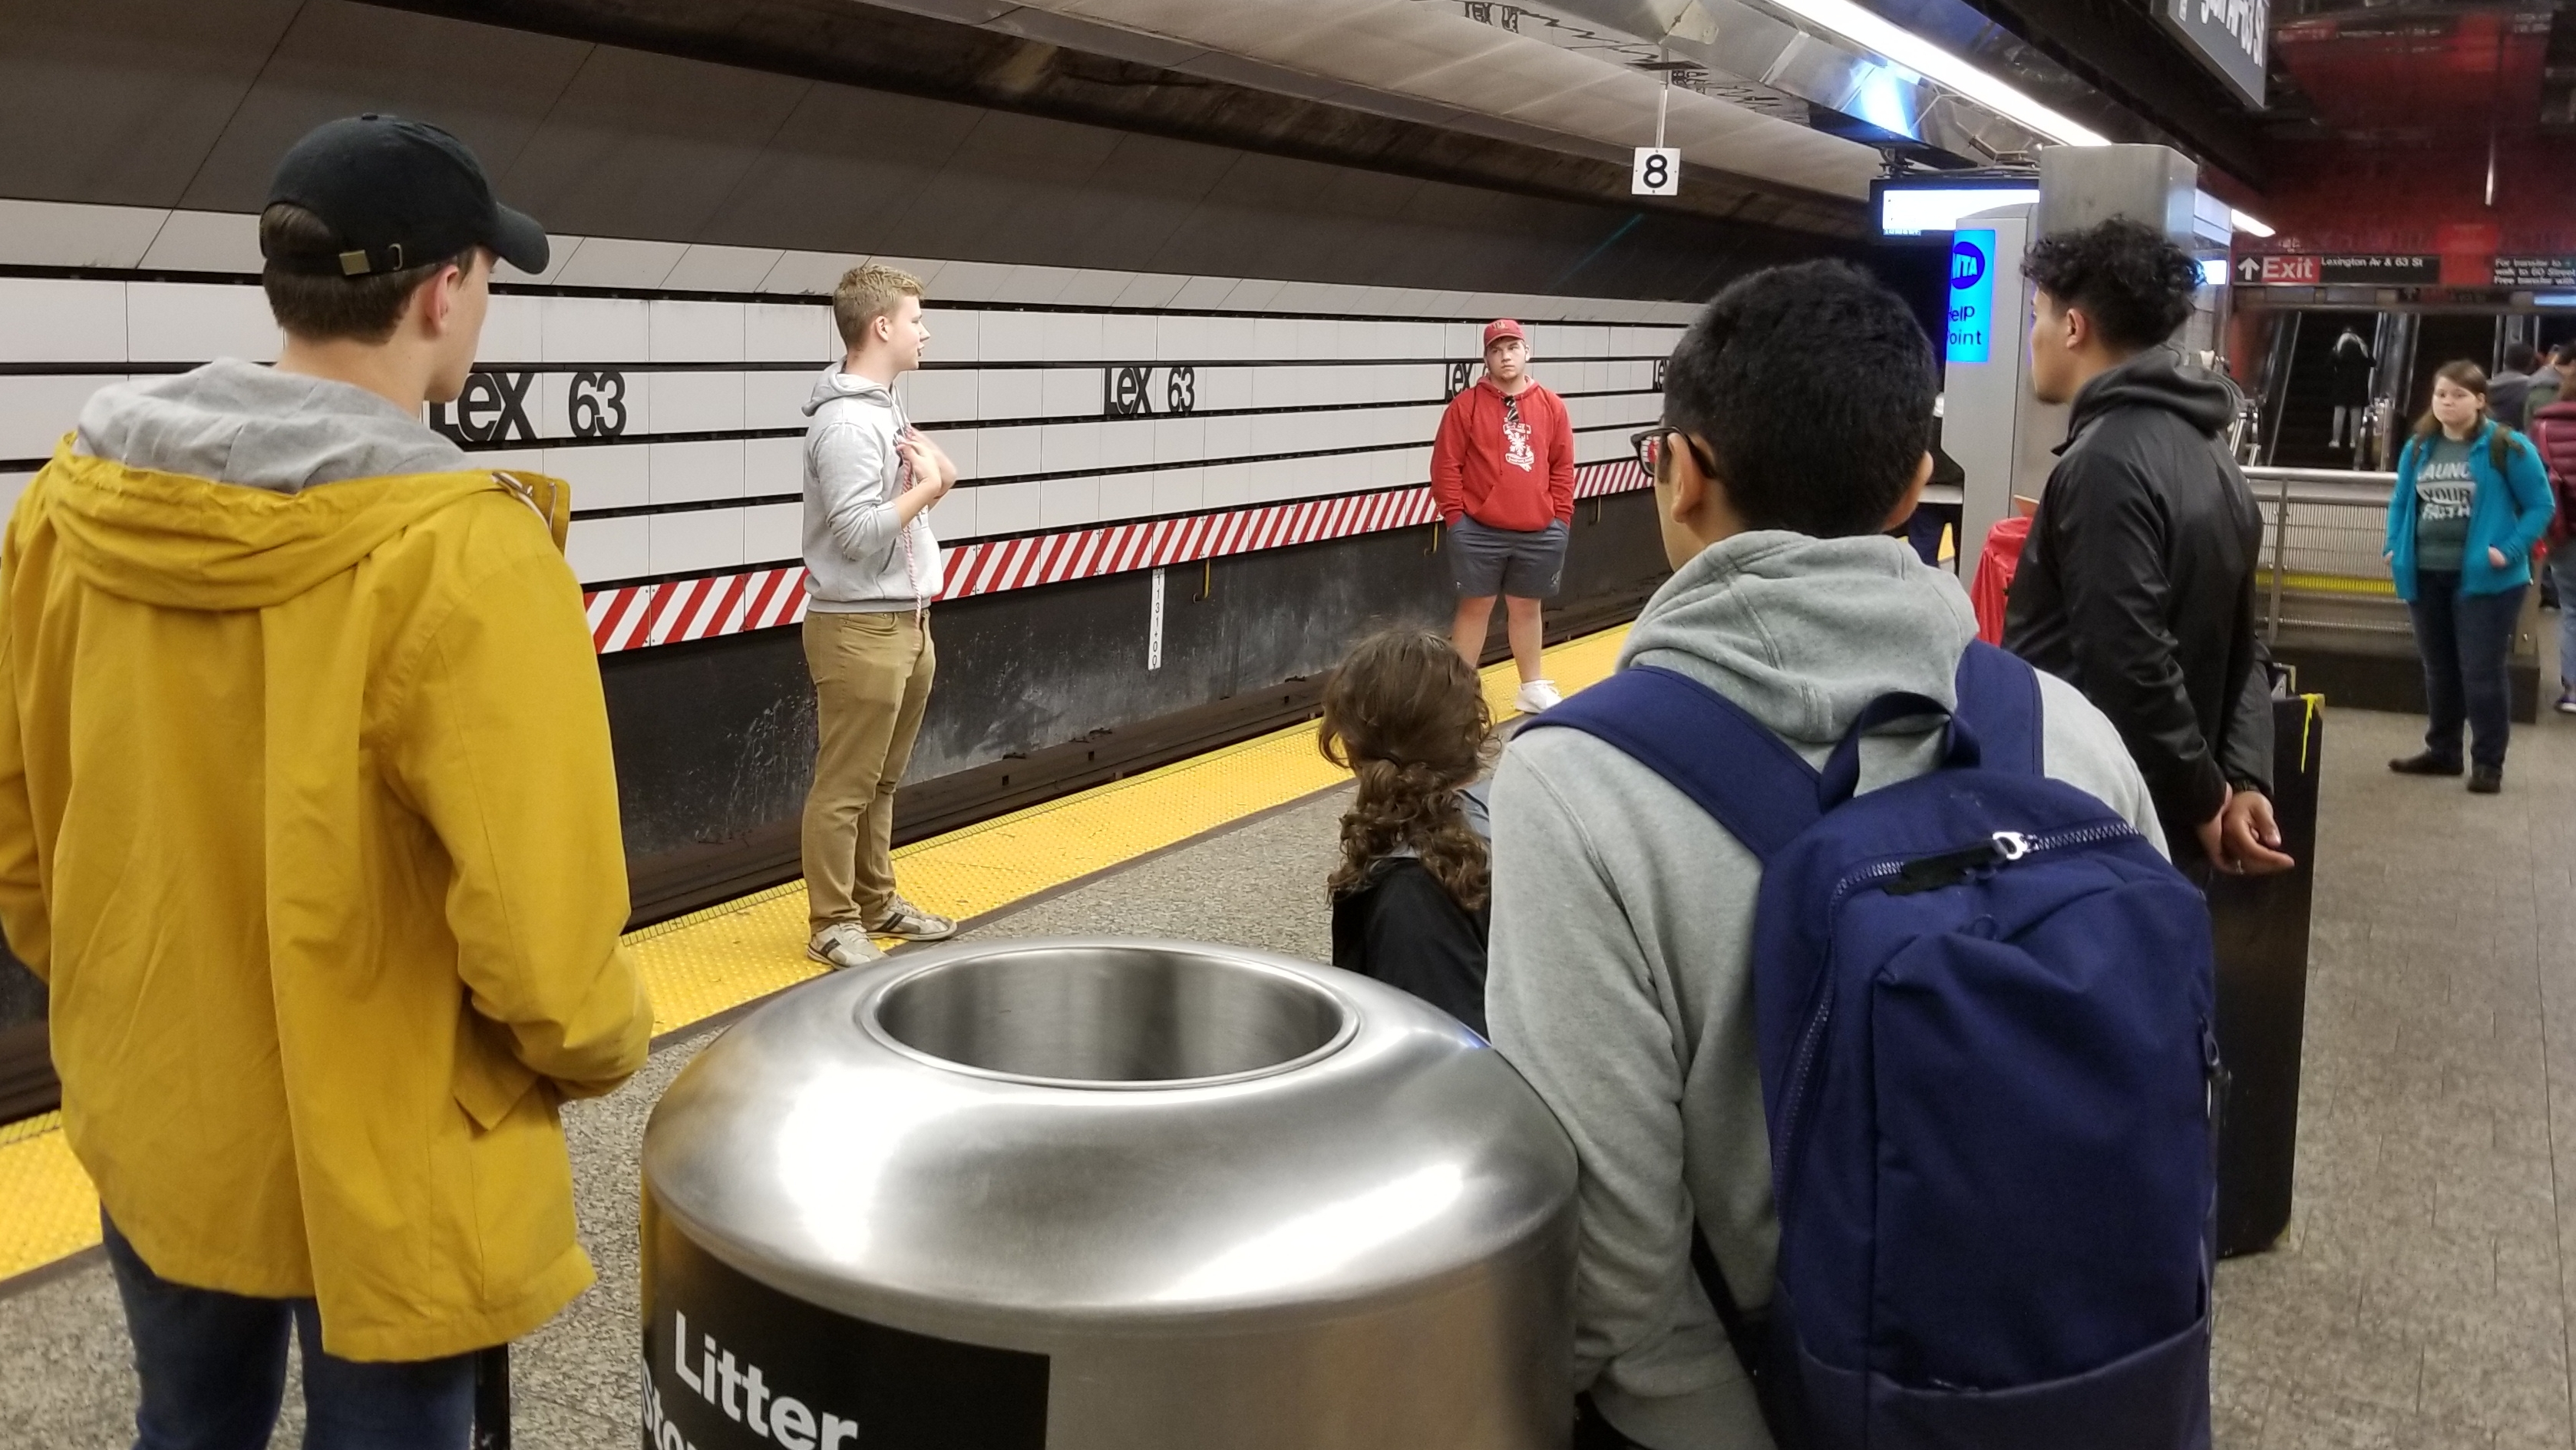 When it began raining, we headed down into the subway. God gave us a terrific ministry spot down there. We were able to do a dozen or so open-air messages, like this one Ben is doing.